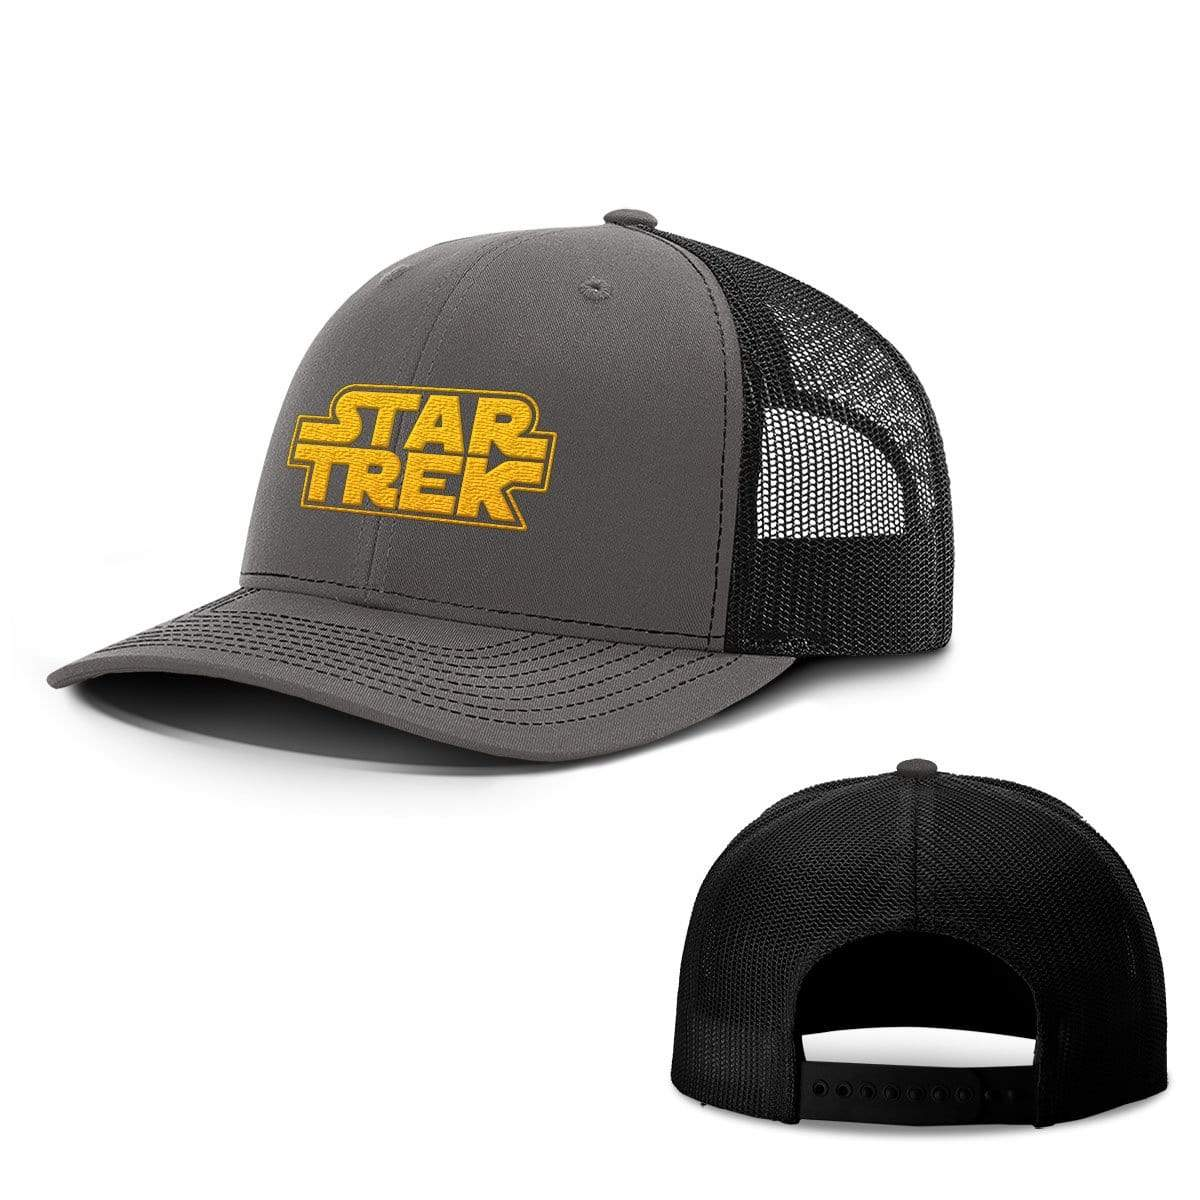 SunFrog-Busted Hats Snapback / Charcoal and Black / One Size Trek Wars Hats